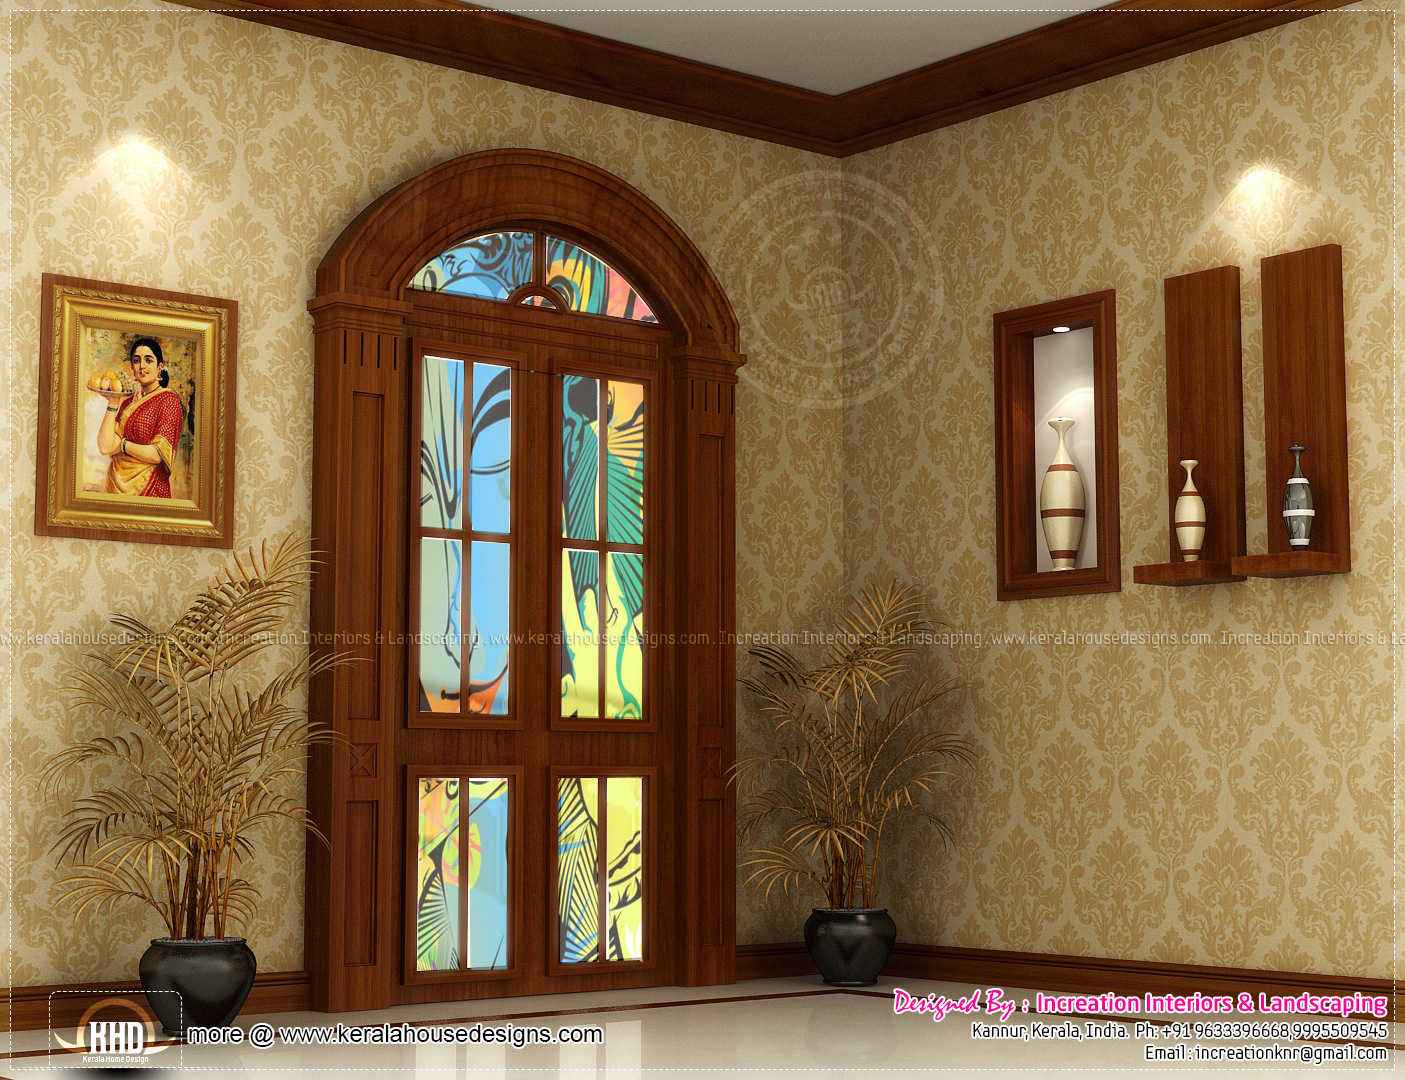 Interior designs by increation kannur kerala home for Foyer design ideas india